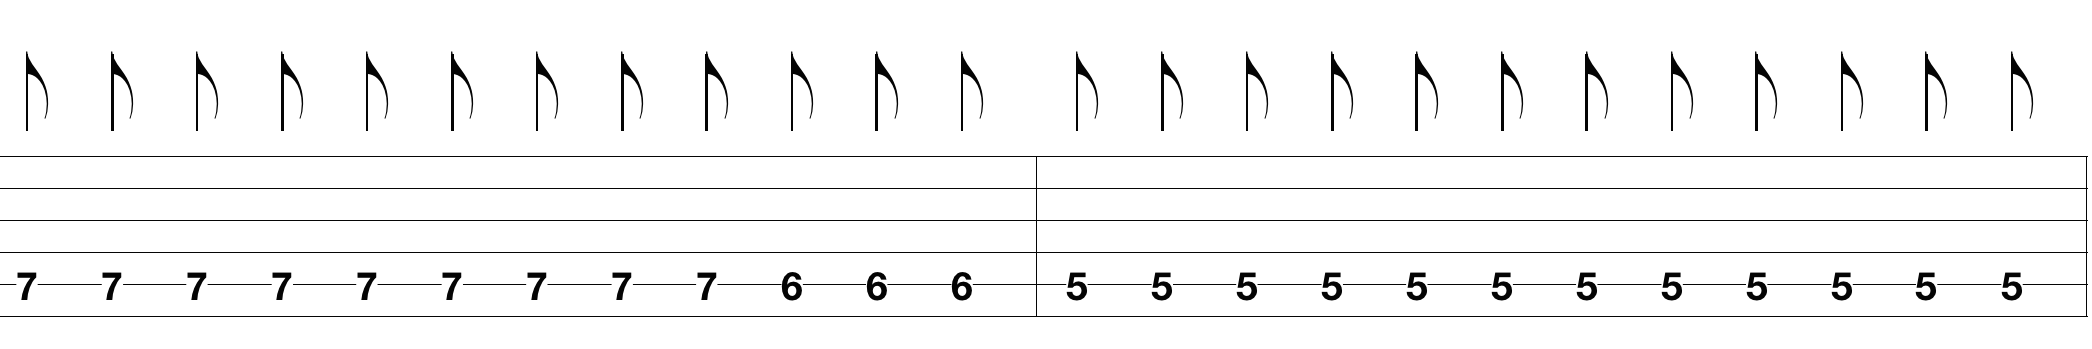 guitar-tabs-blues_4.png